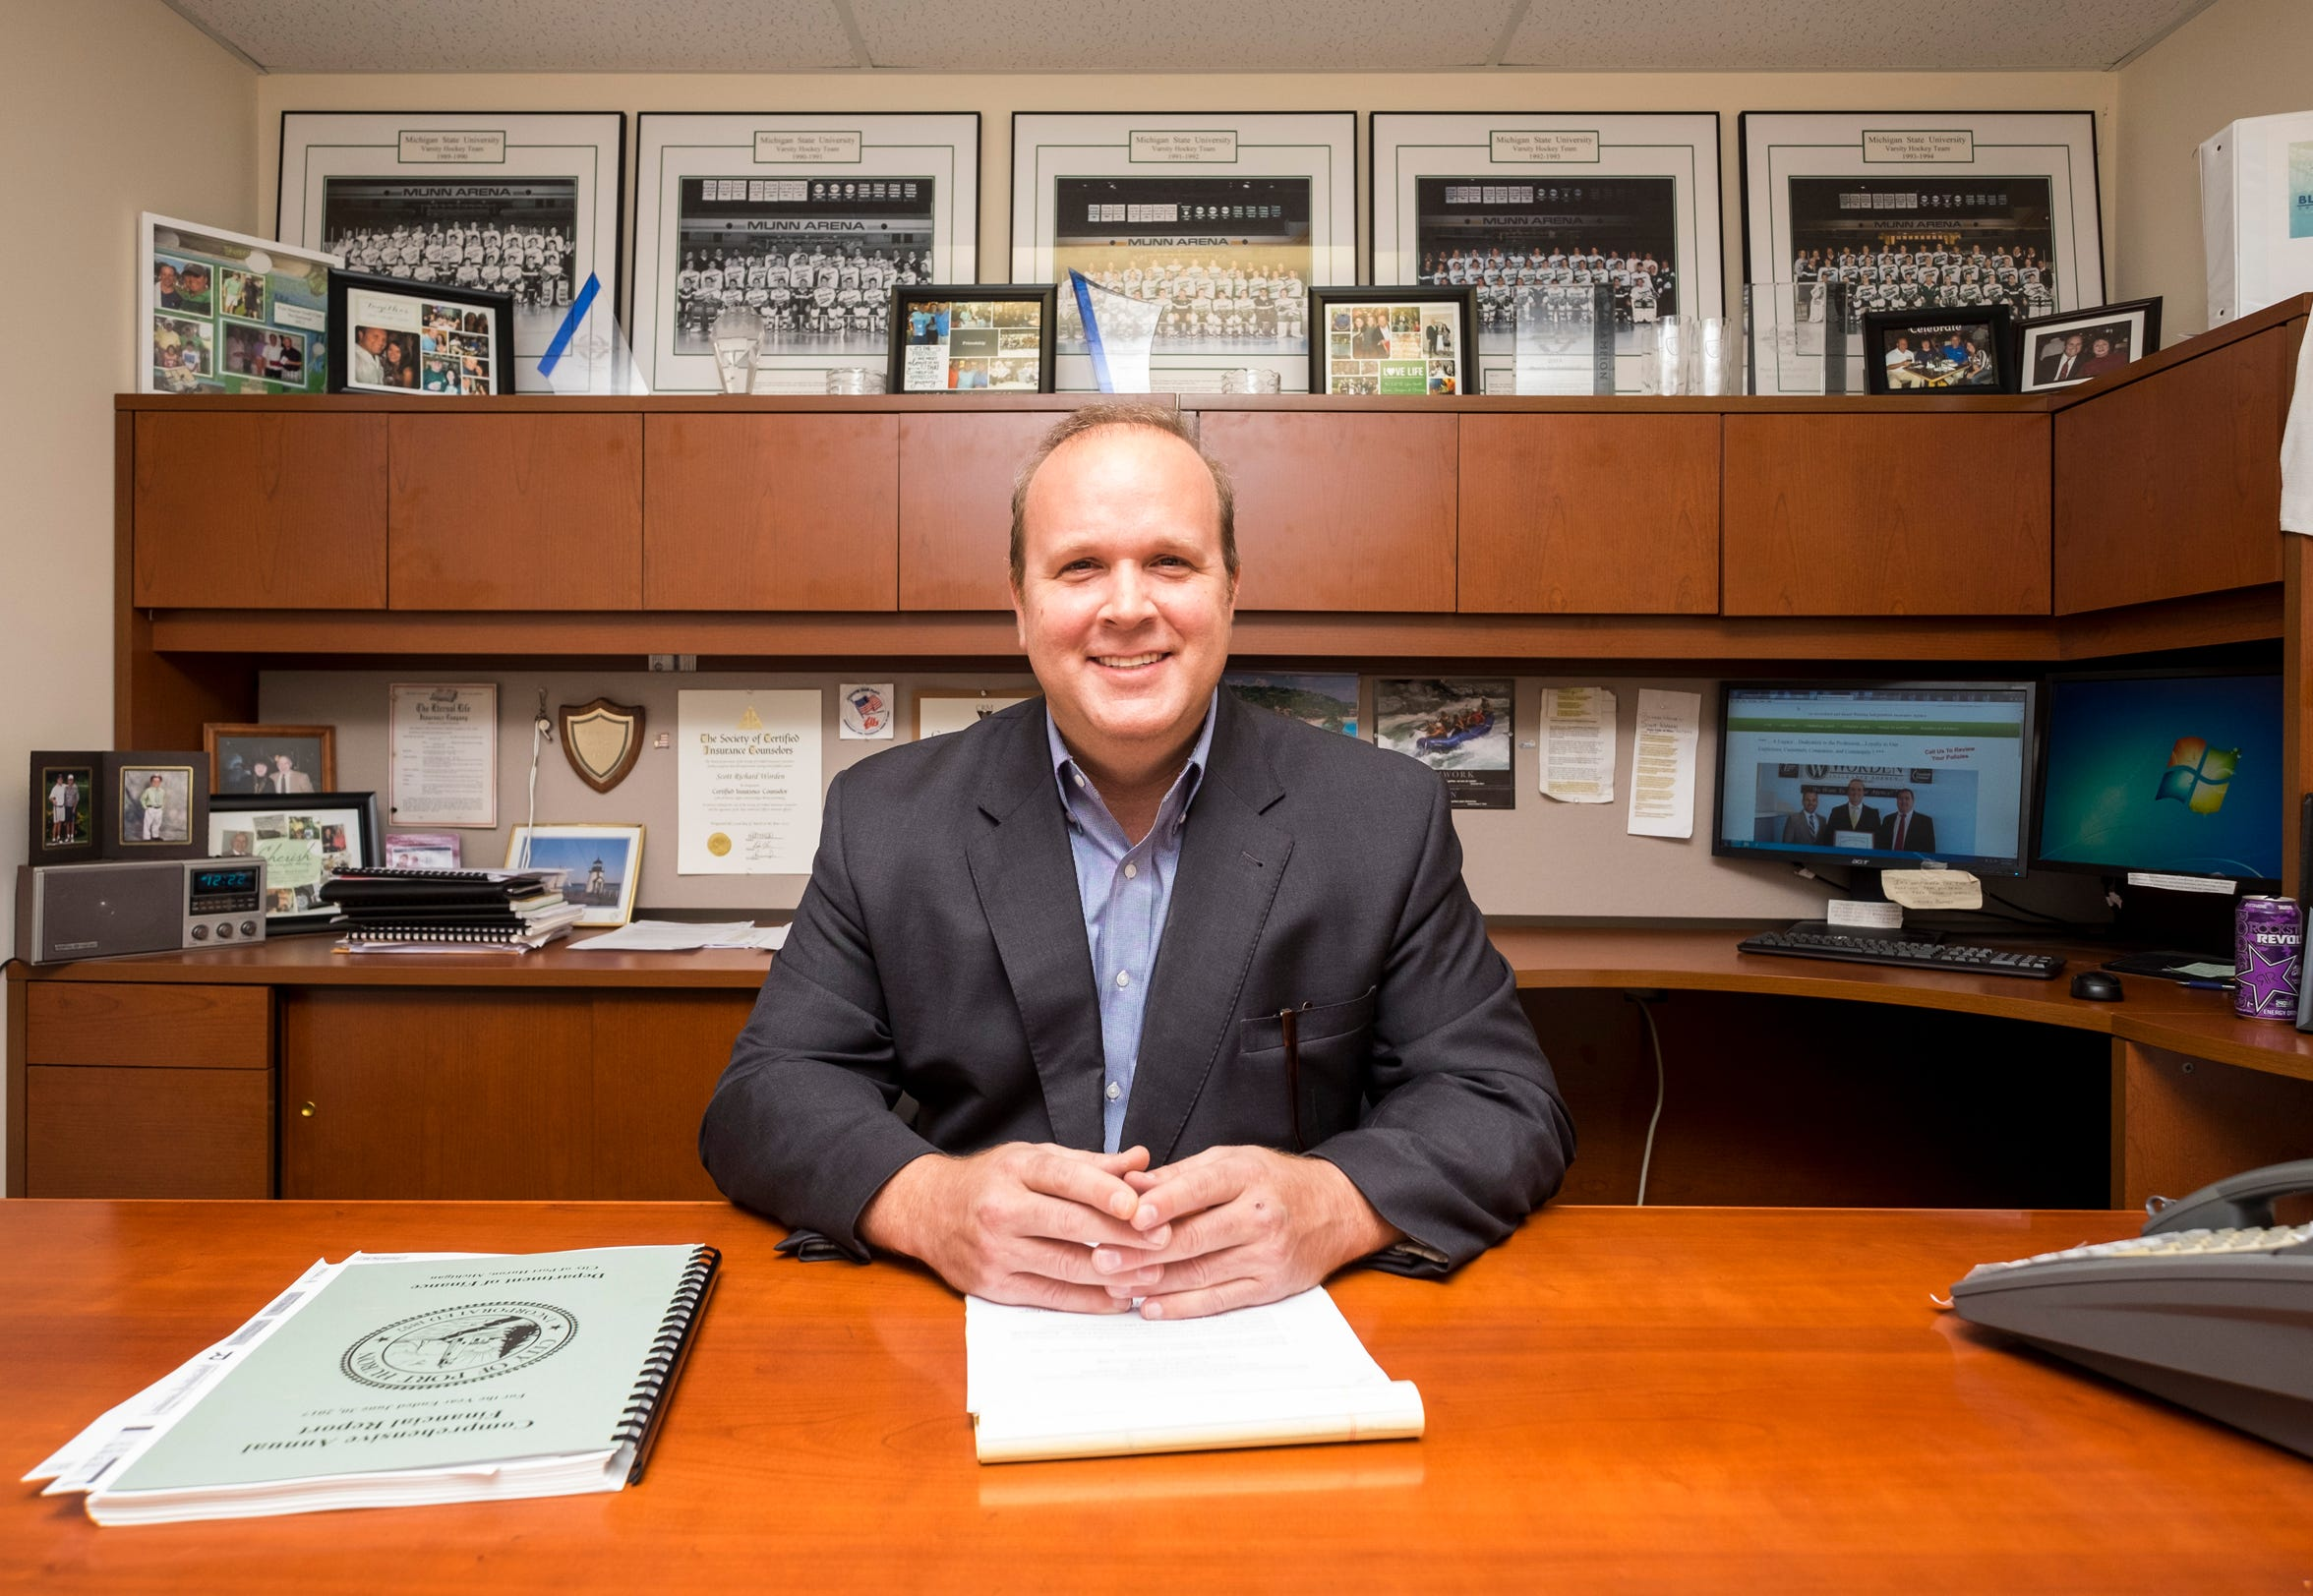 Port Huron City Councilman Scott Worden, pictured in his office on Wednesday, Oct. 3, 2018, at Word Insurance in Marysville, is among the four candidates running for mayor. He's also the third sitting council member — after Alan Lewandowski and the late Brian Moeller — to challenge incumbent Pauline Repp during her tenure.